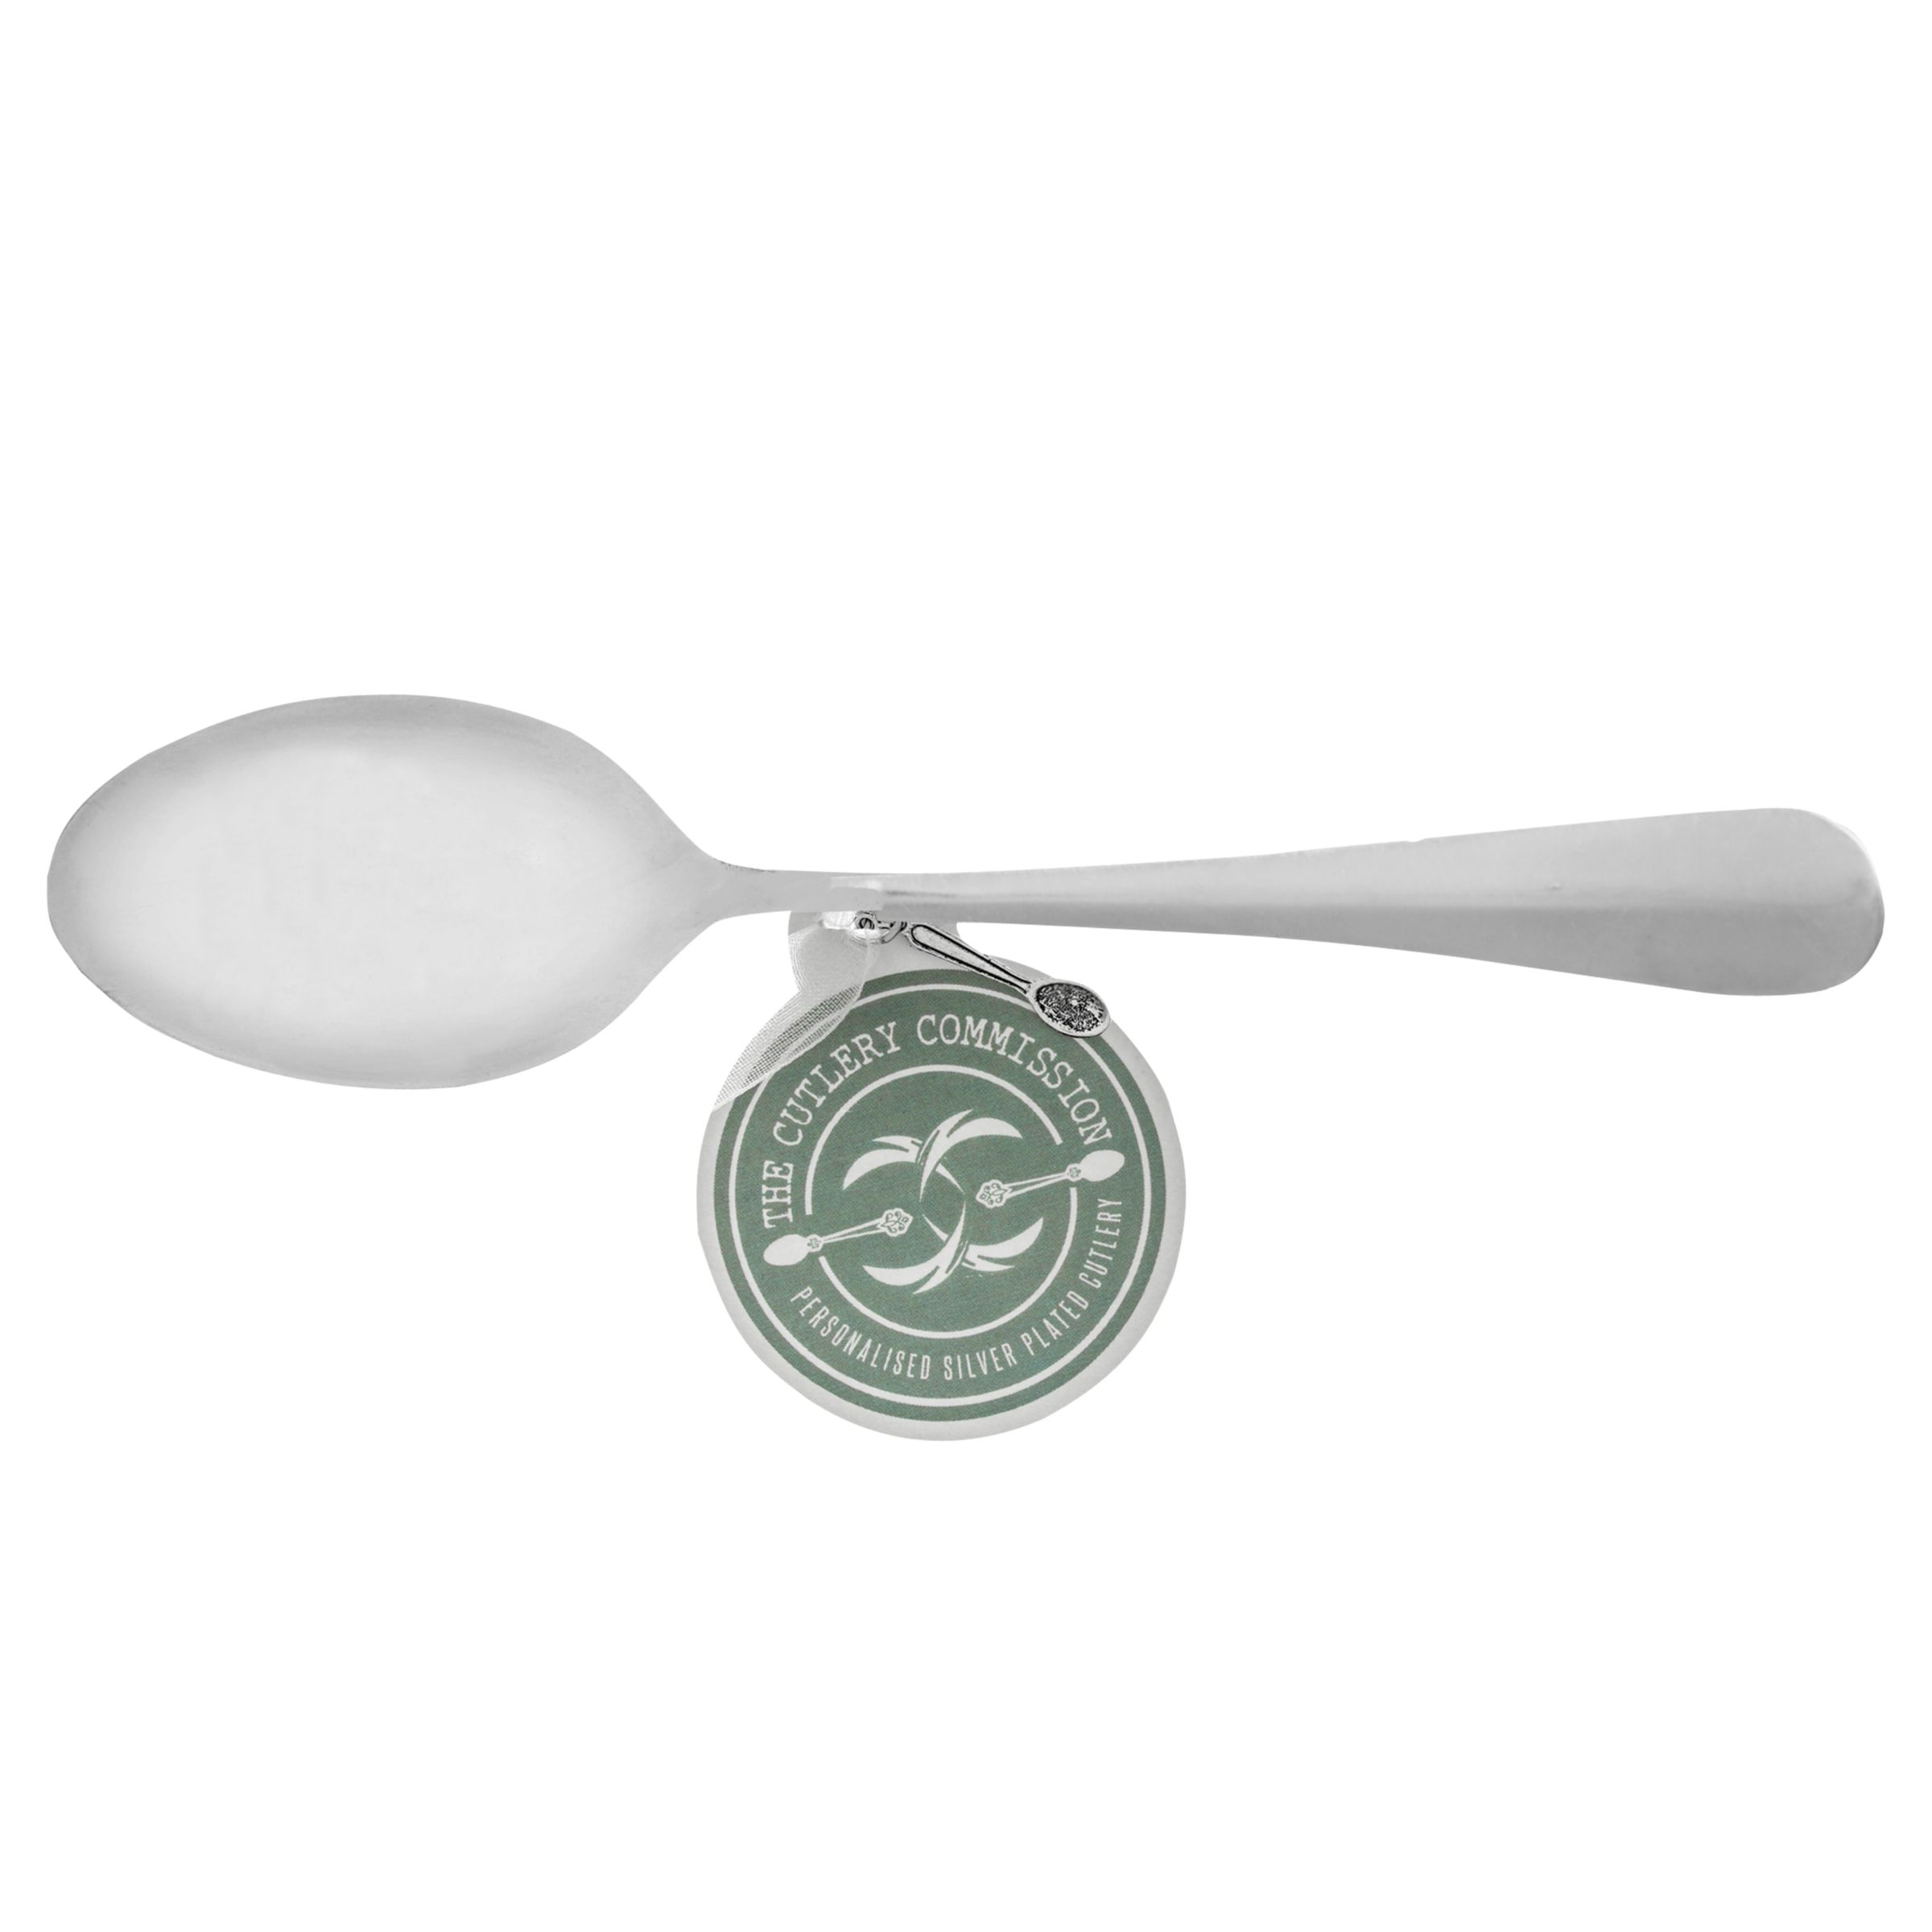 Cutlery Commission Cutlery Commission Silver-Plated Personalised Tea Spoons